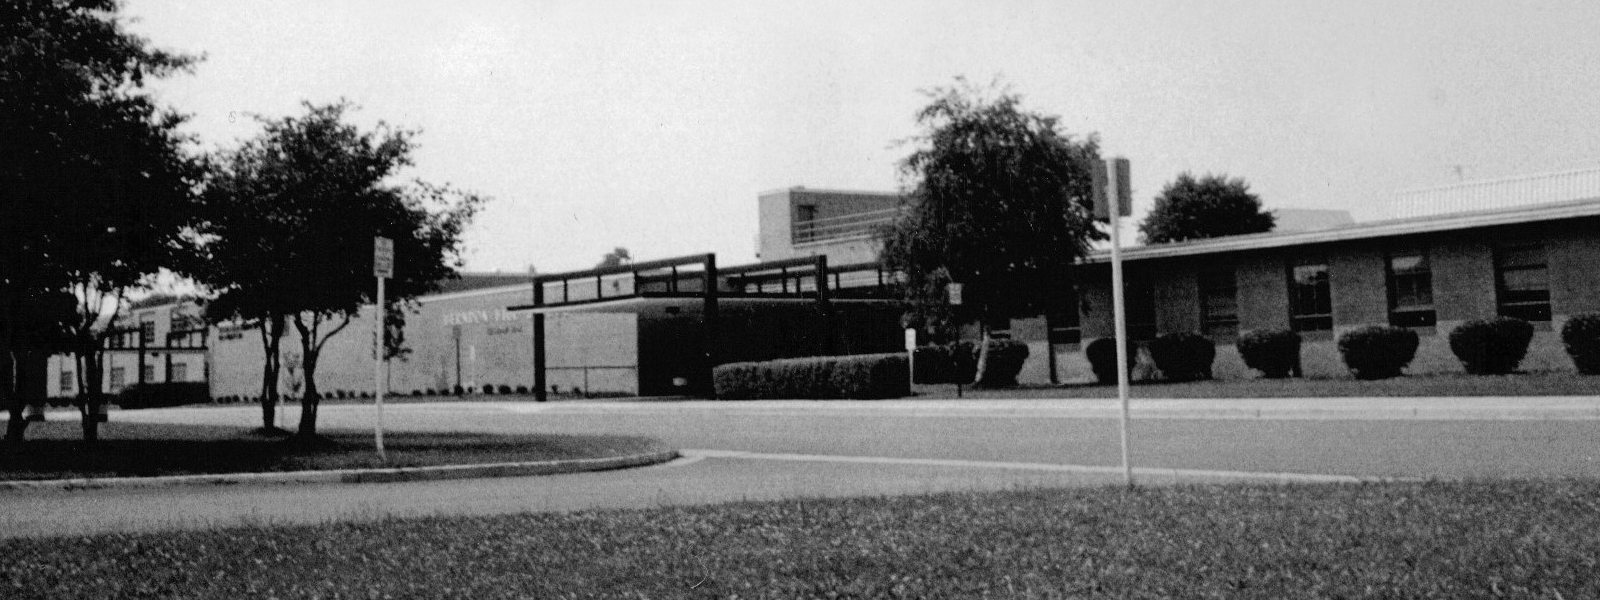 Black and white photograph of the front of Herndon High School's 1967 building. The date the photograph was taken is unknown.